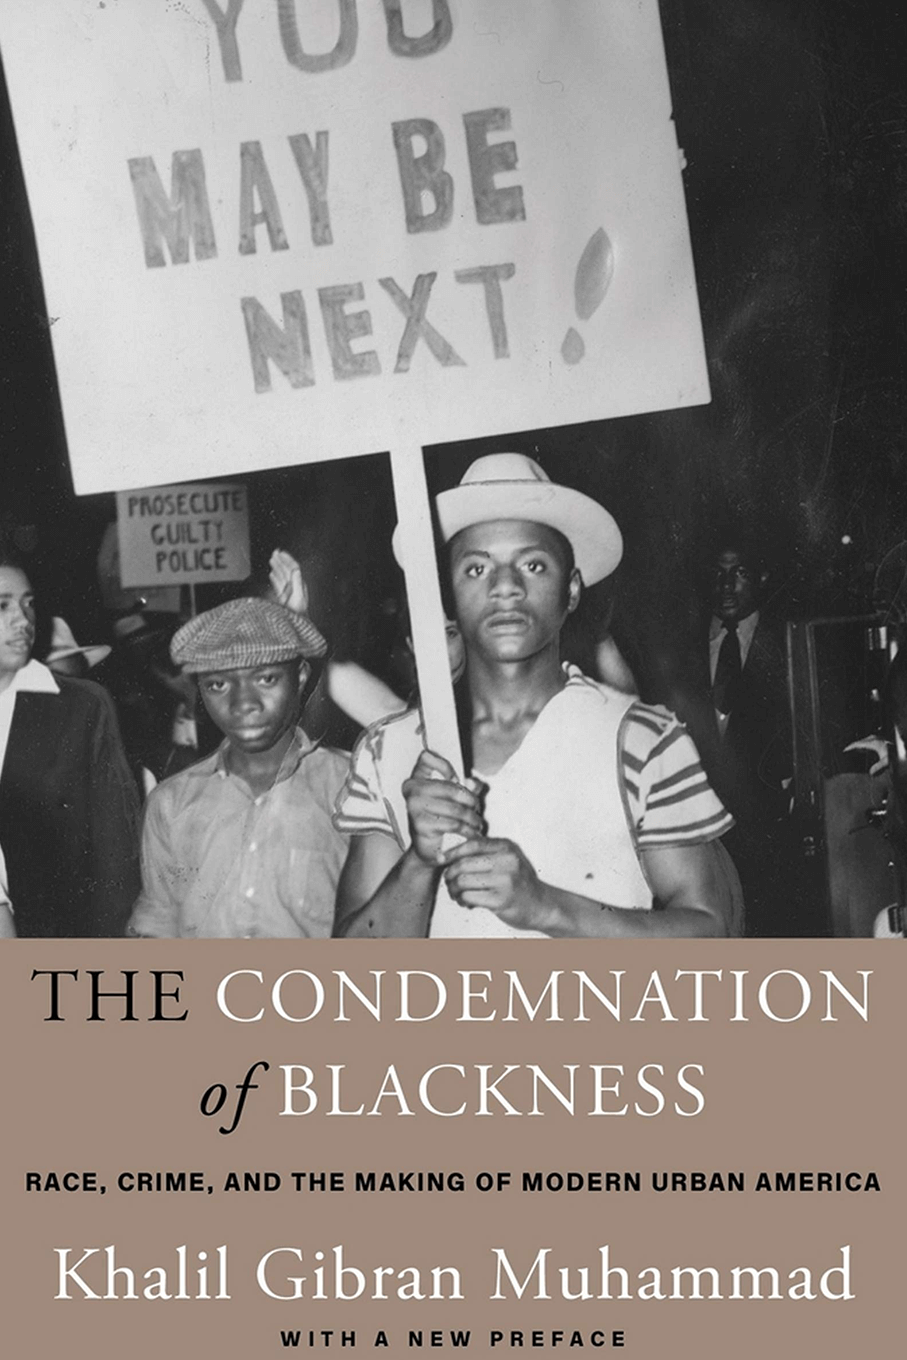 The Condemnation of Blackness book cover, author Khalil Gabran Muhammad